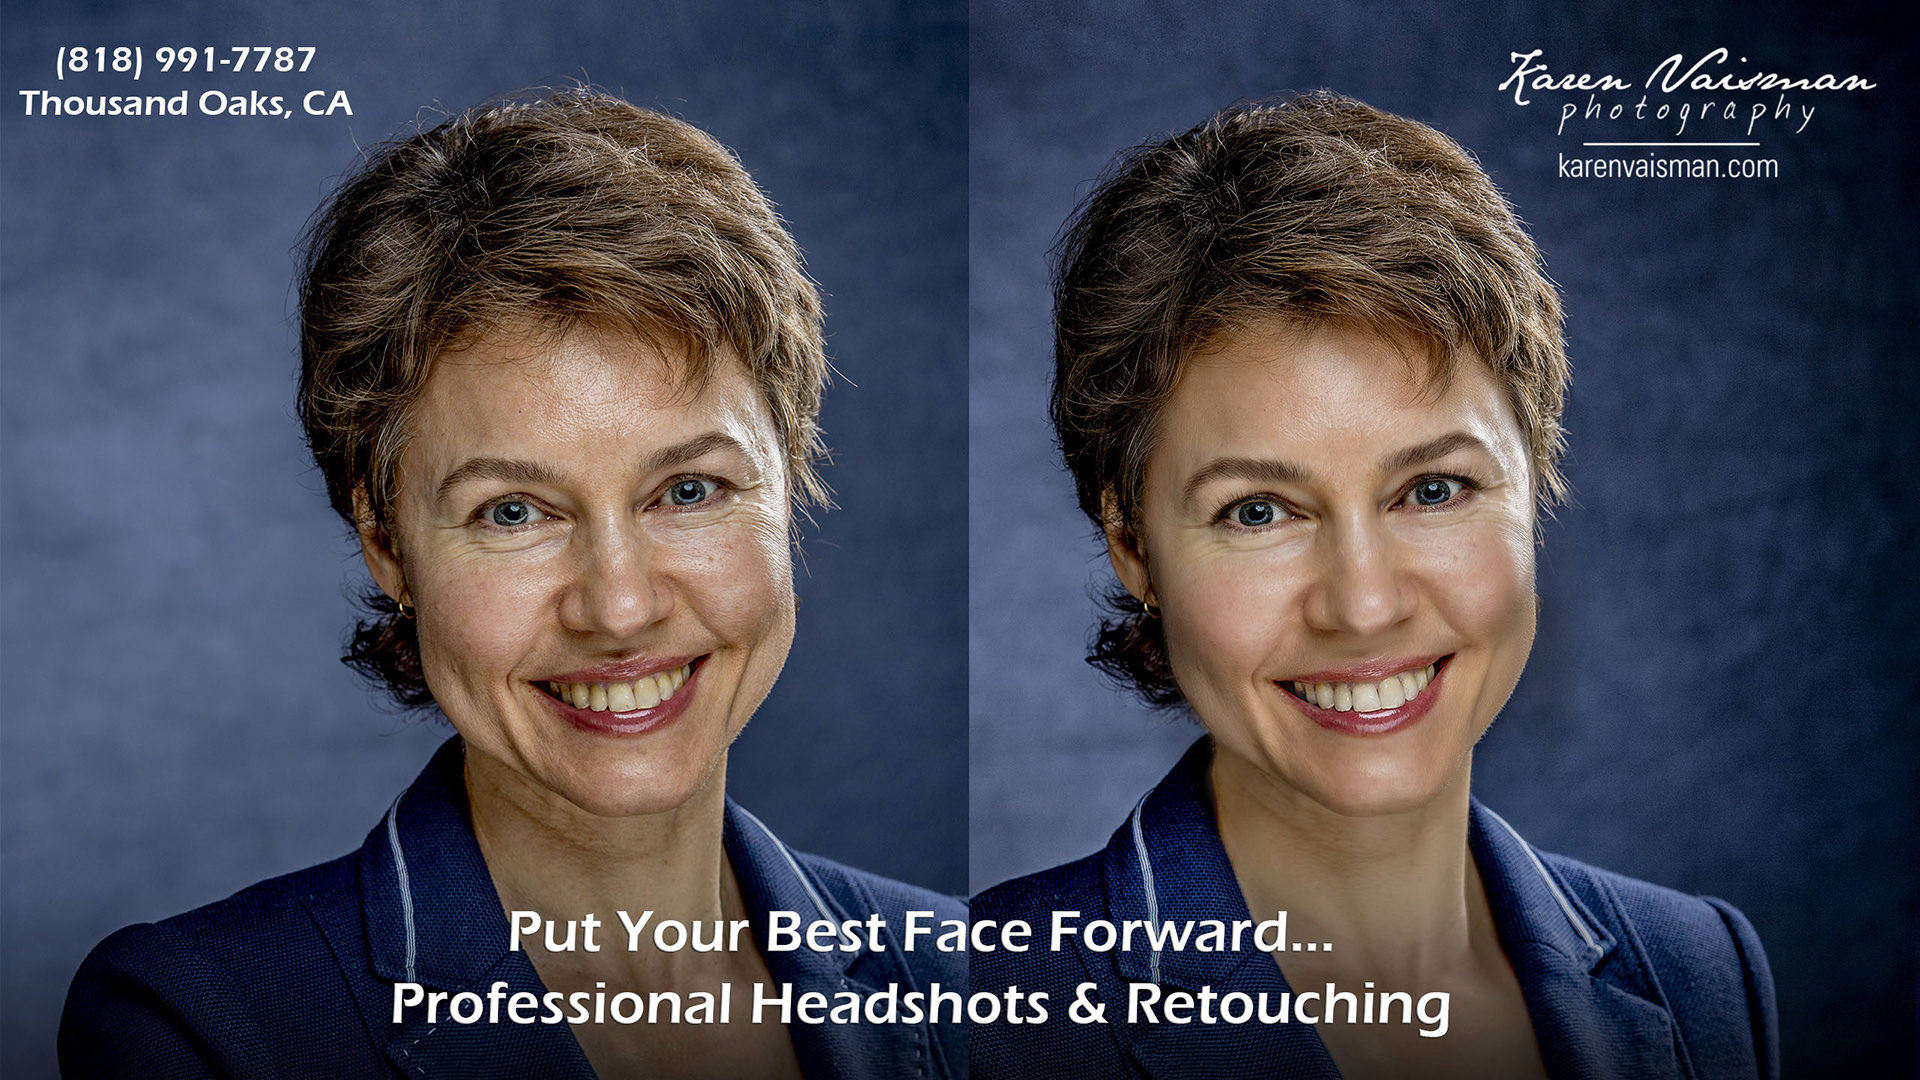 Copy of Professionally Retouched Corporate Headshot